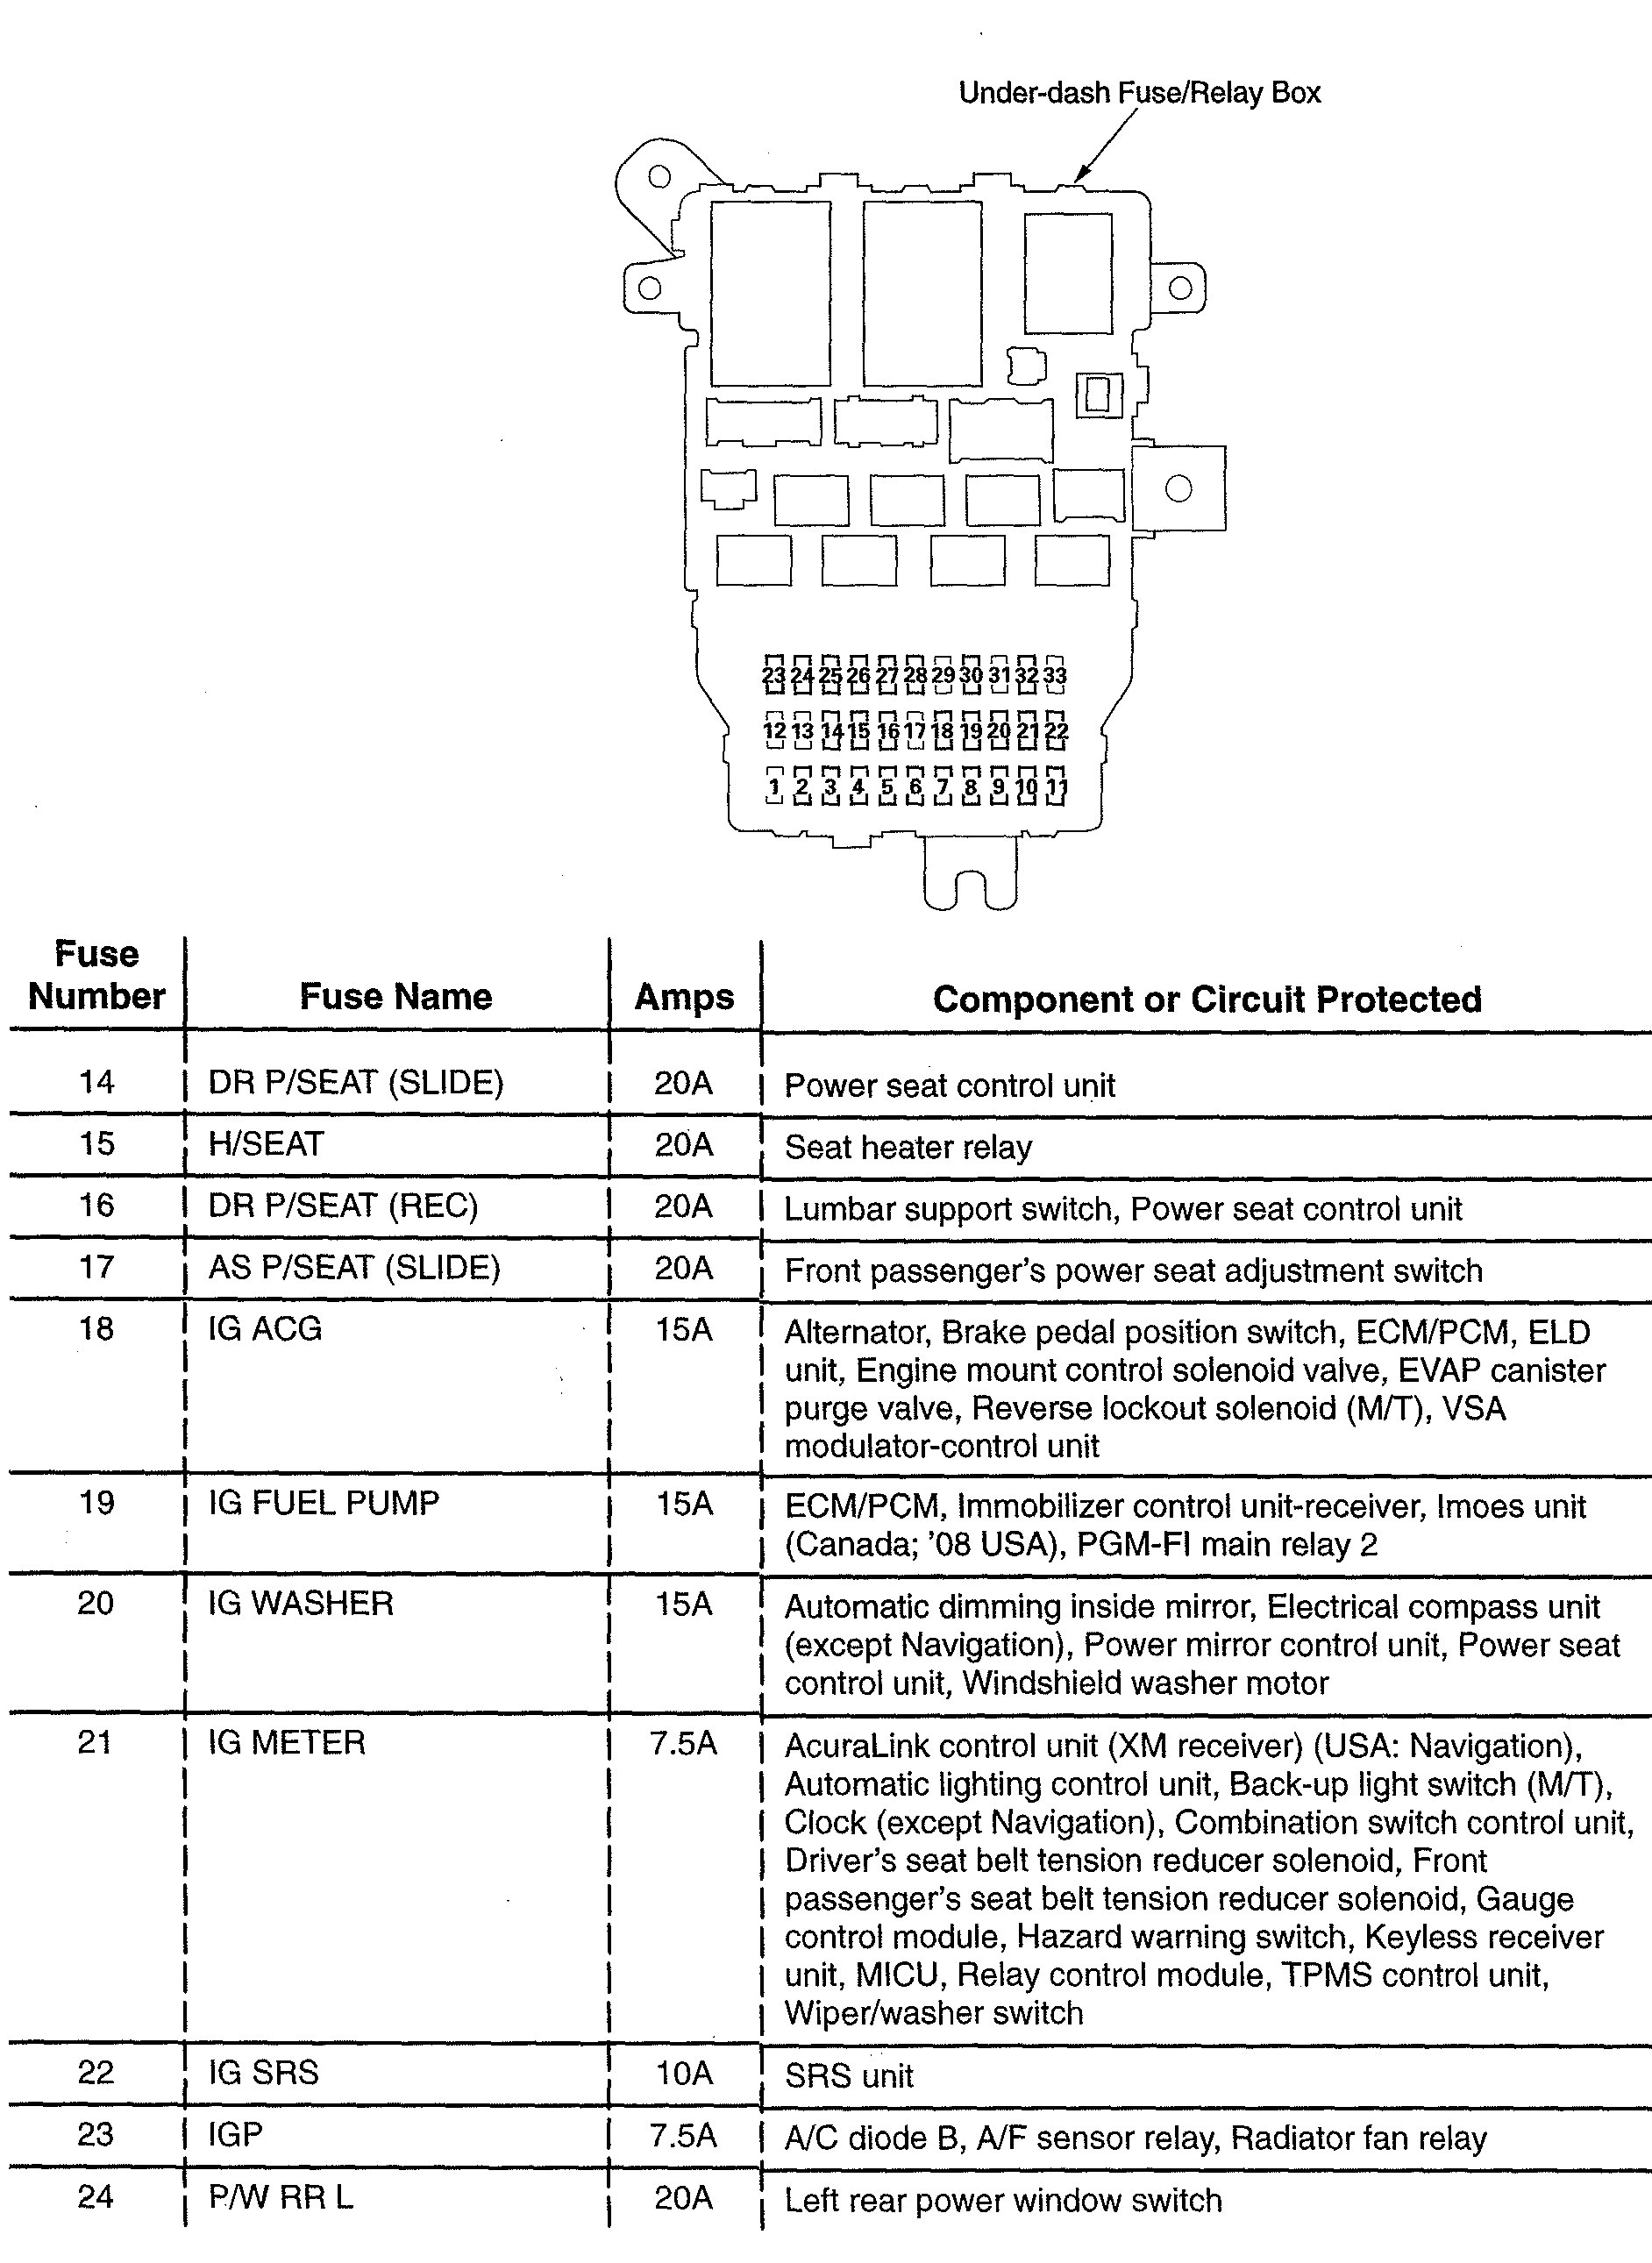 2006 Acura Tl Wiring Diagram Books Of Fuse Box Starting Know About U2022 Rh Prezzy Co Navigation Headlight